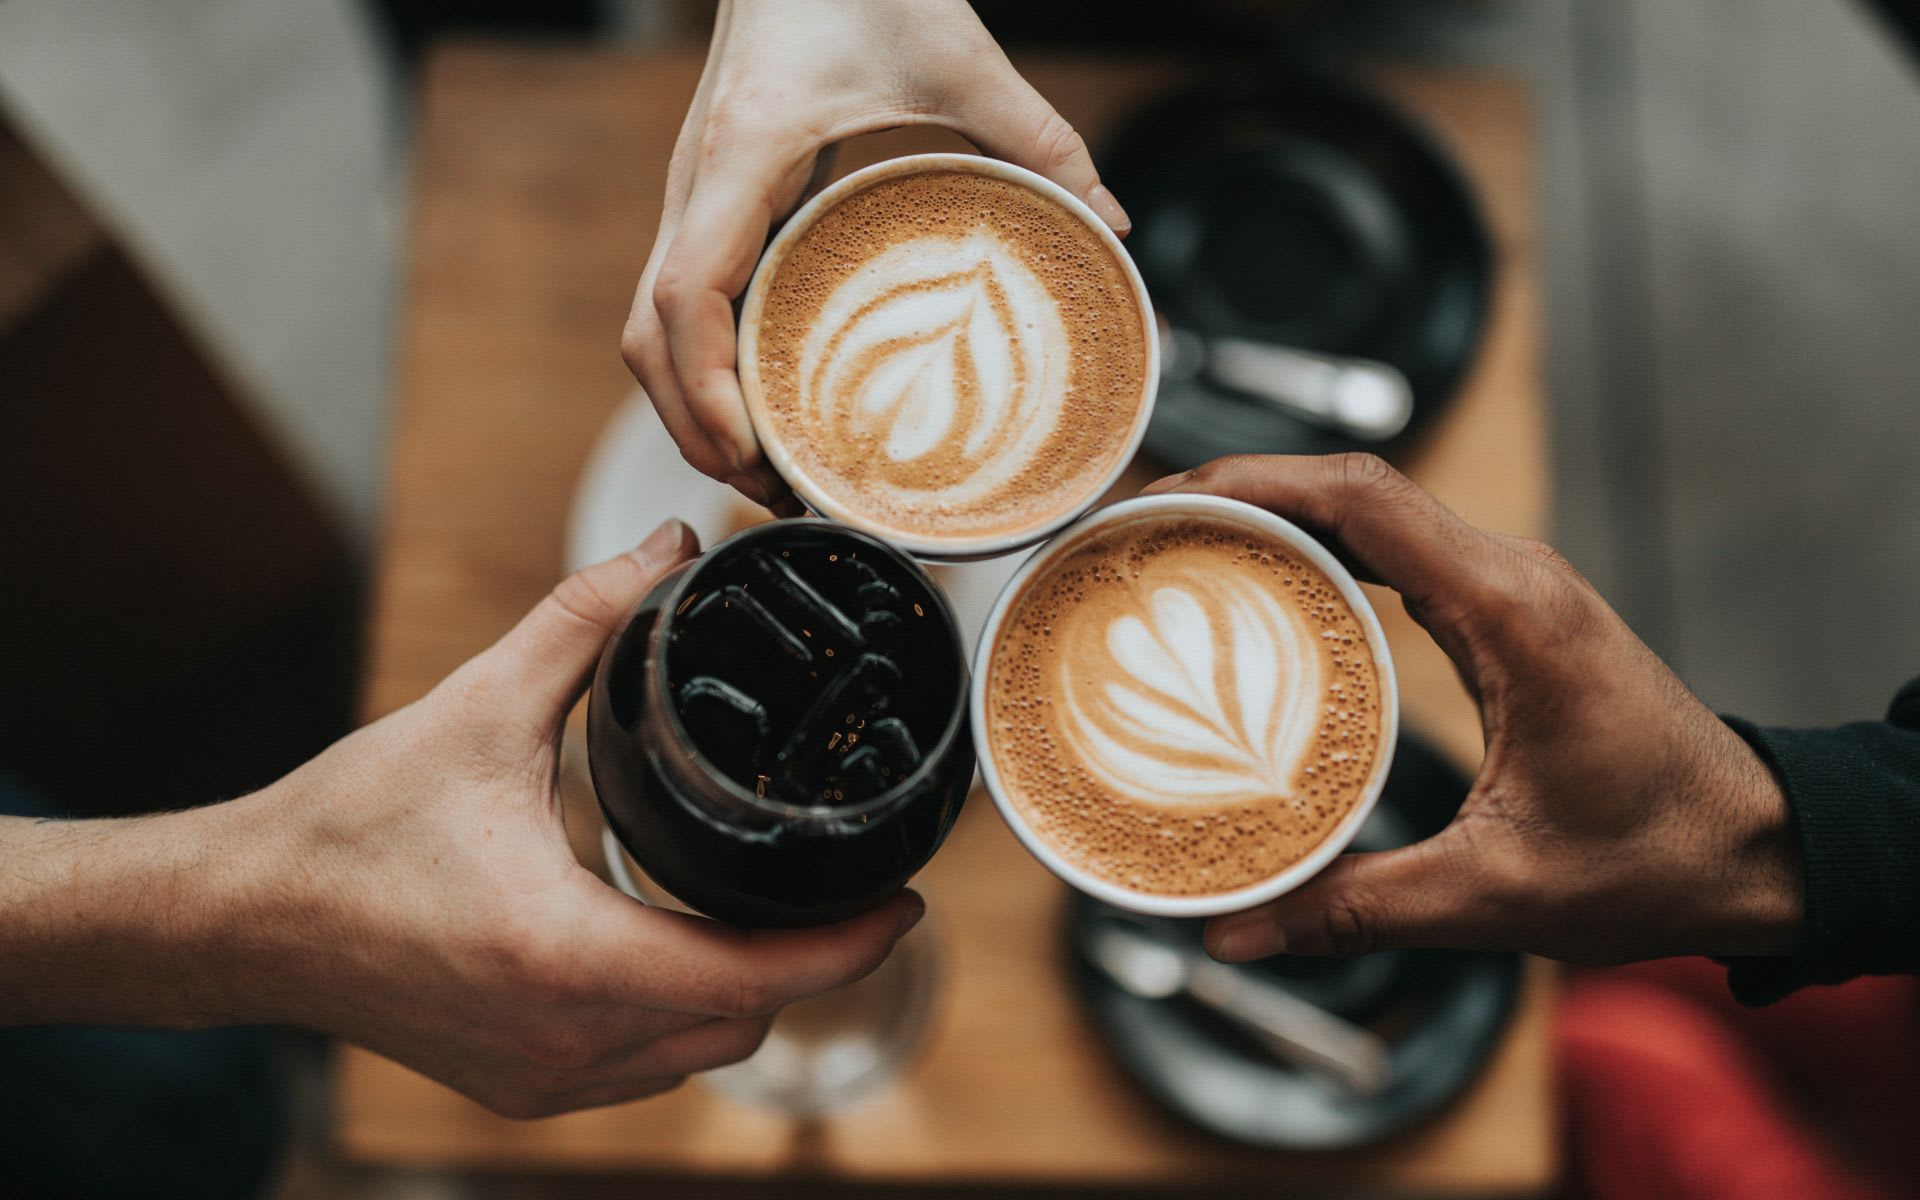 Top Coffee Spots in Silicon Beach